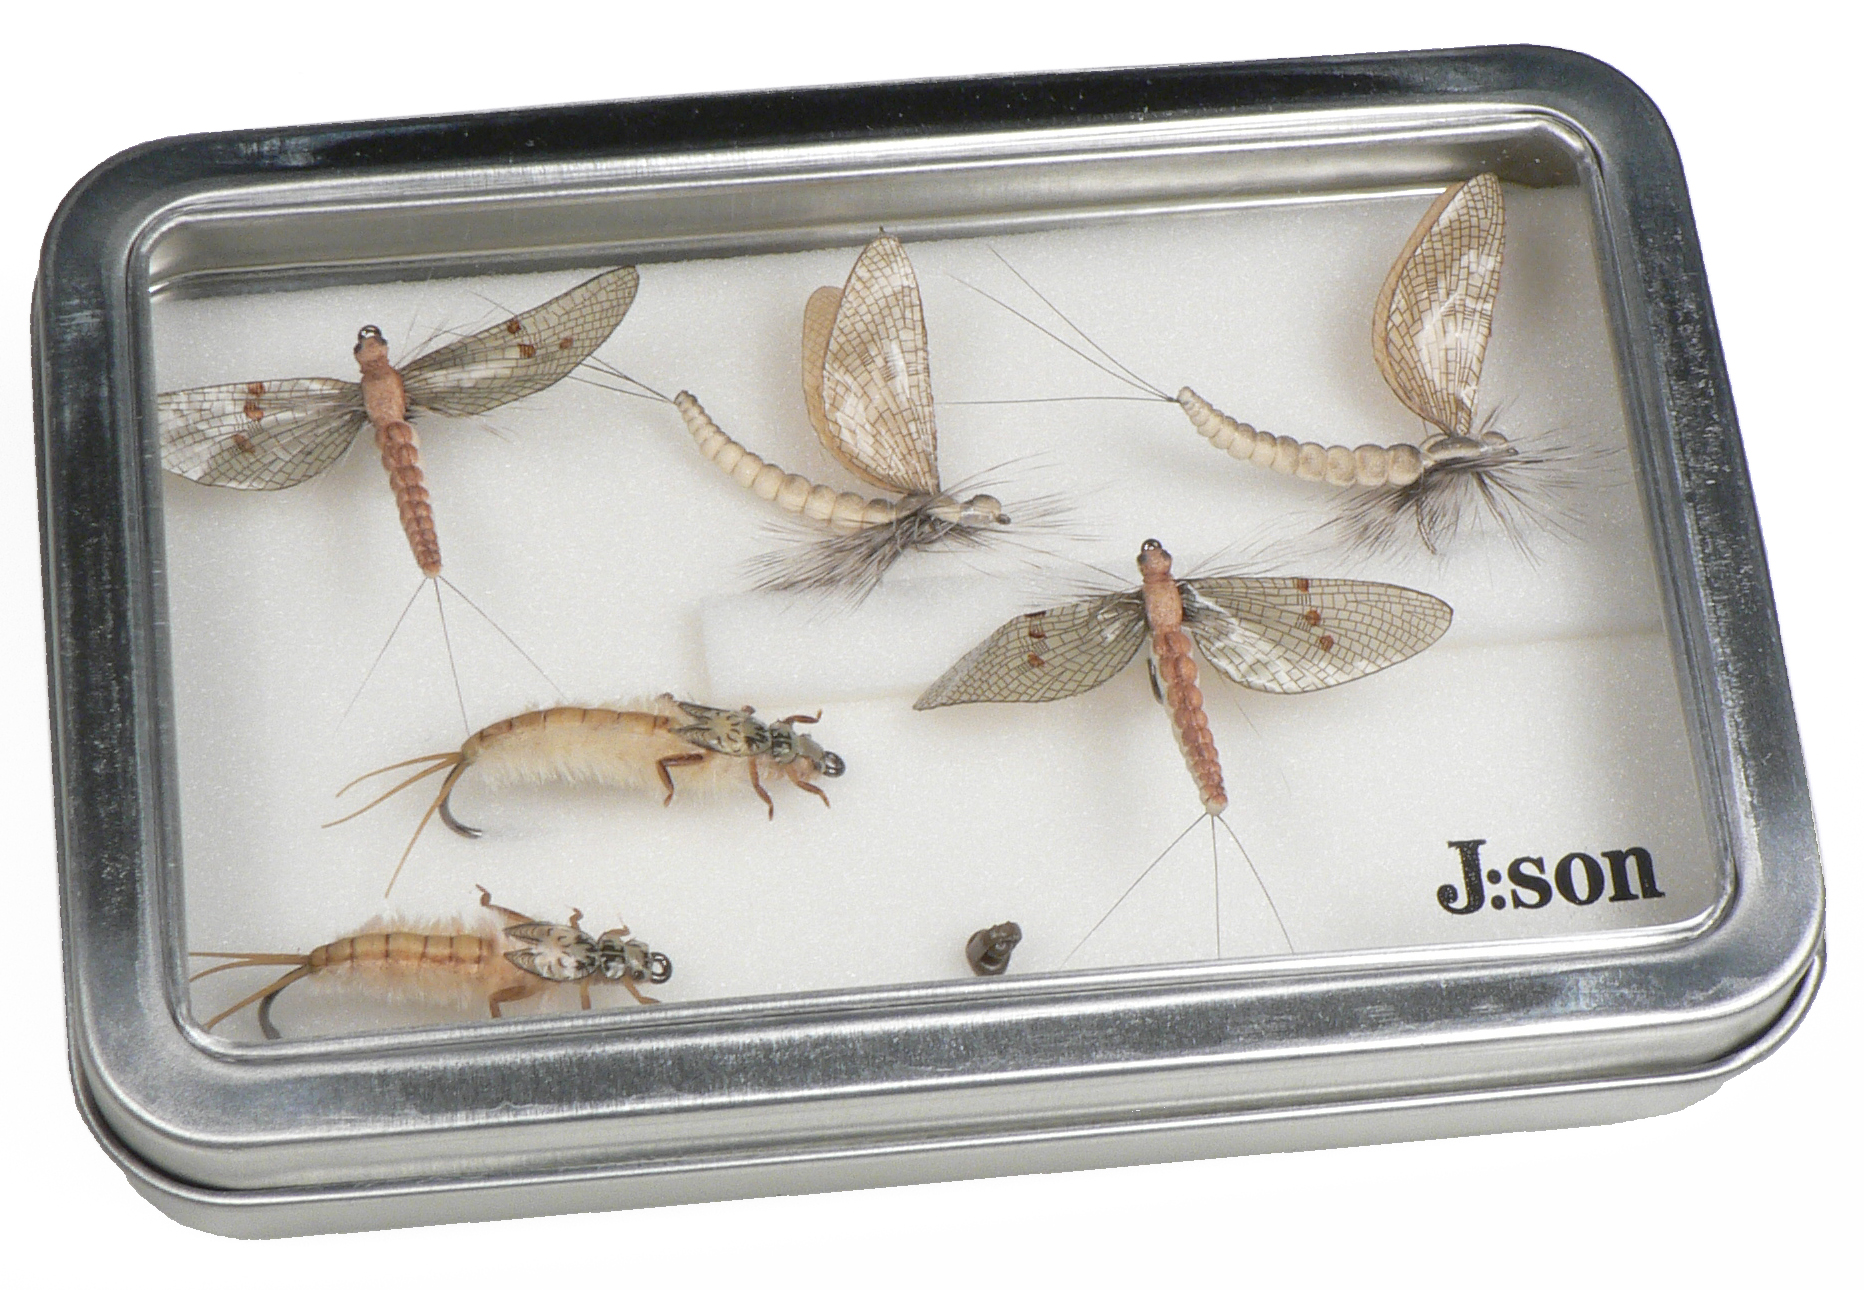 J:son flies accessories gift tins hatch packs sweden Gift Tin